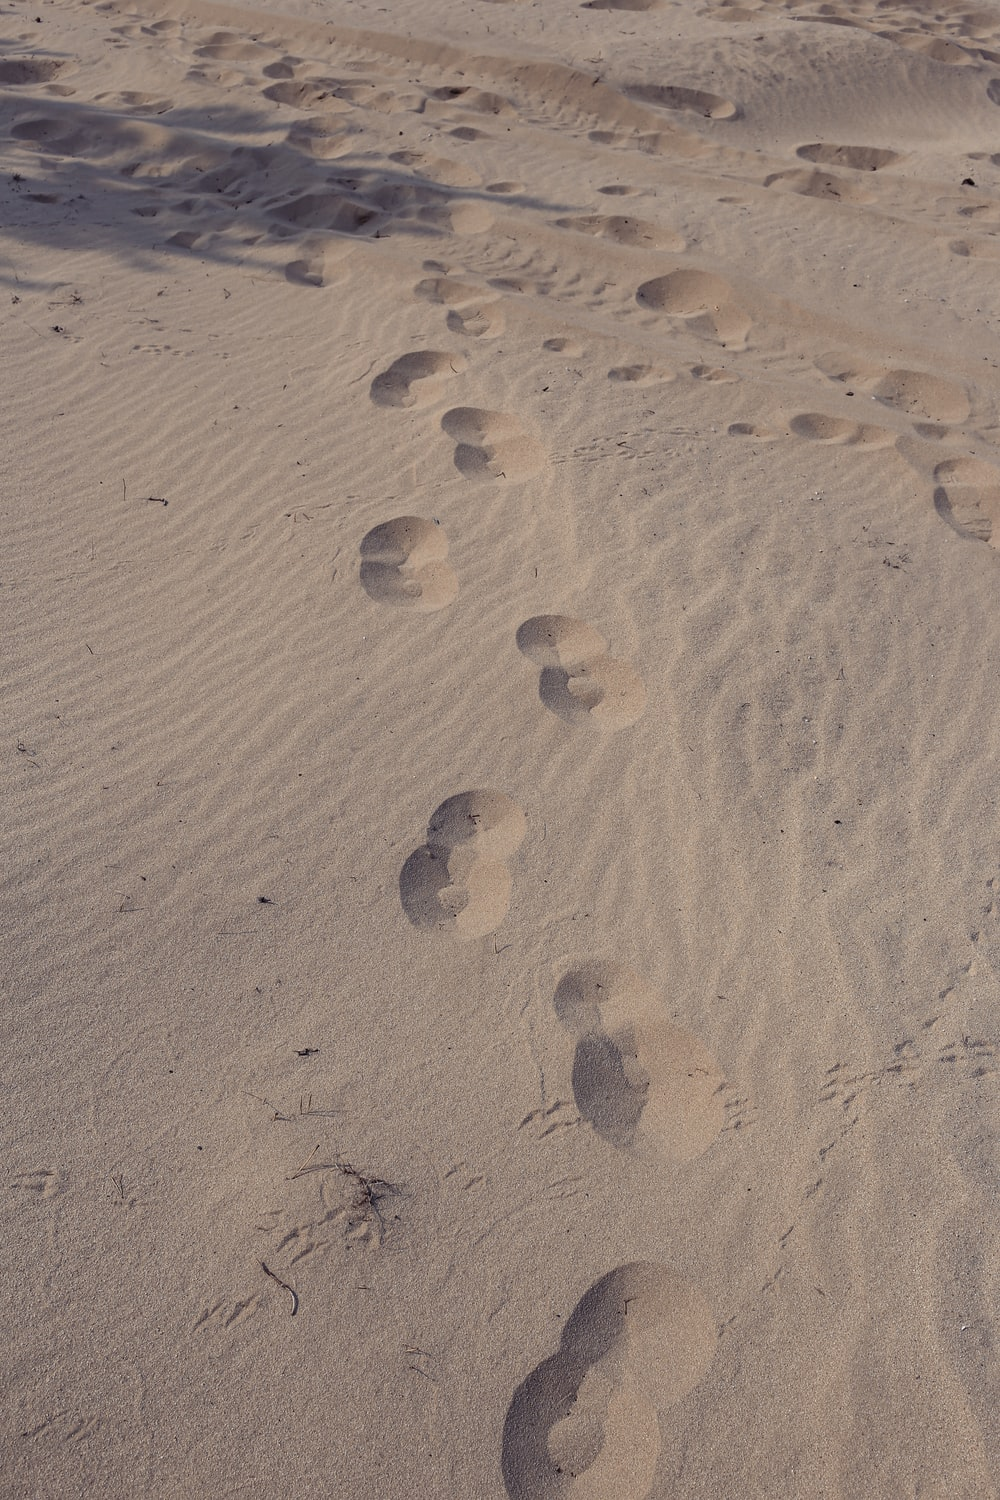 footprints on sand during daytime